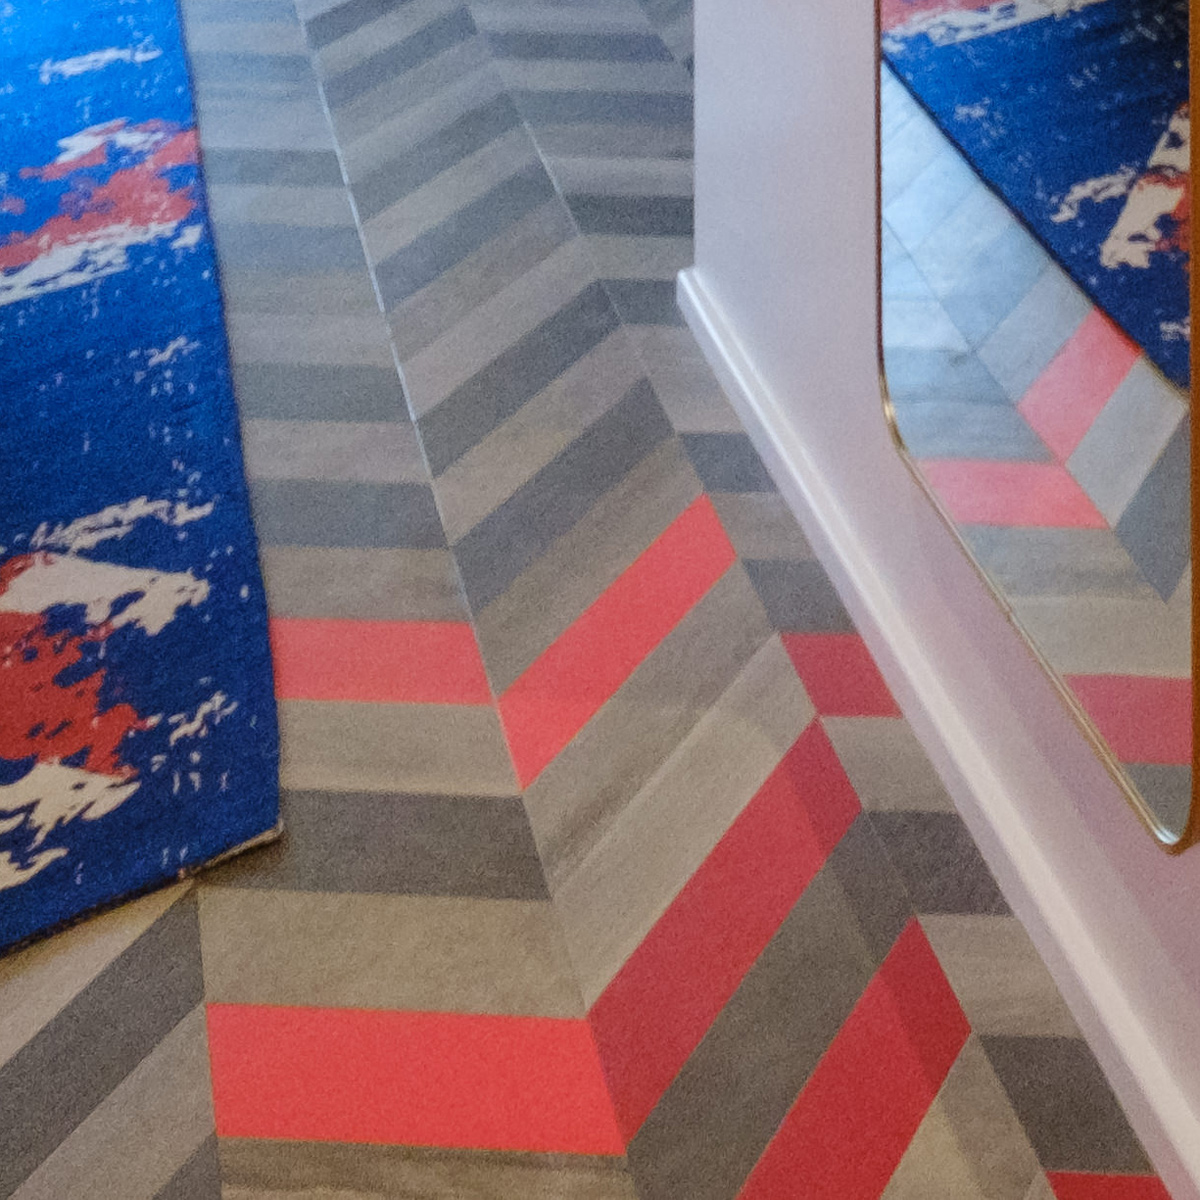 Amtico Signature and Amtico Spacia LVT in a bespoke laying pattern